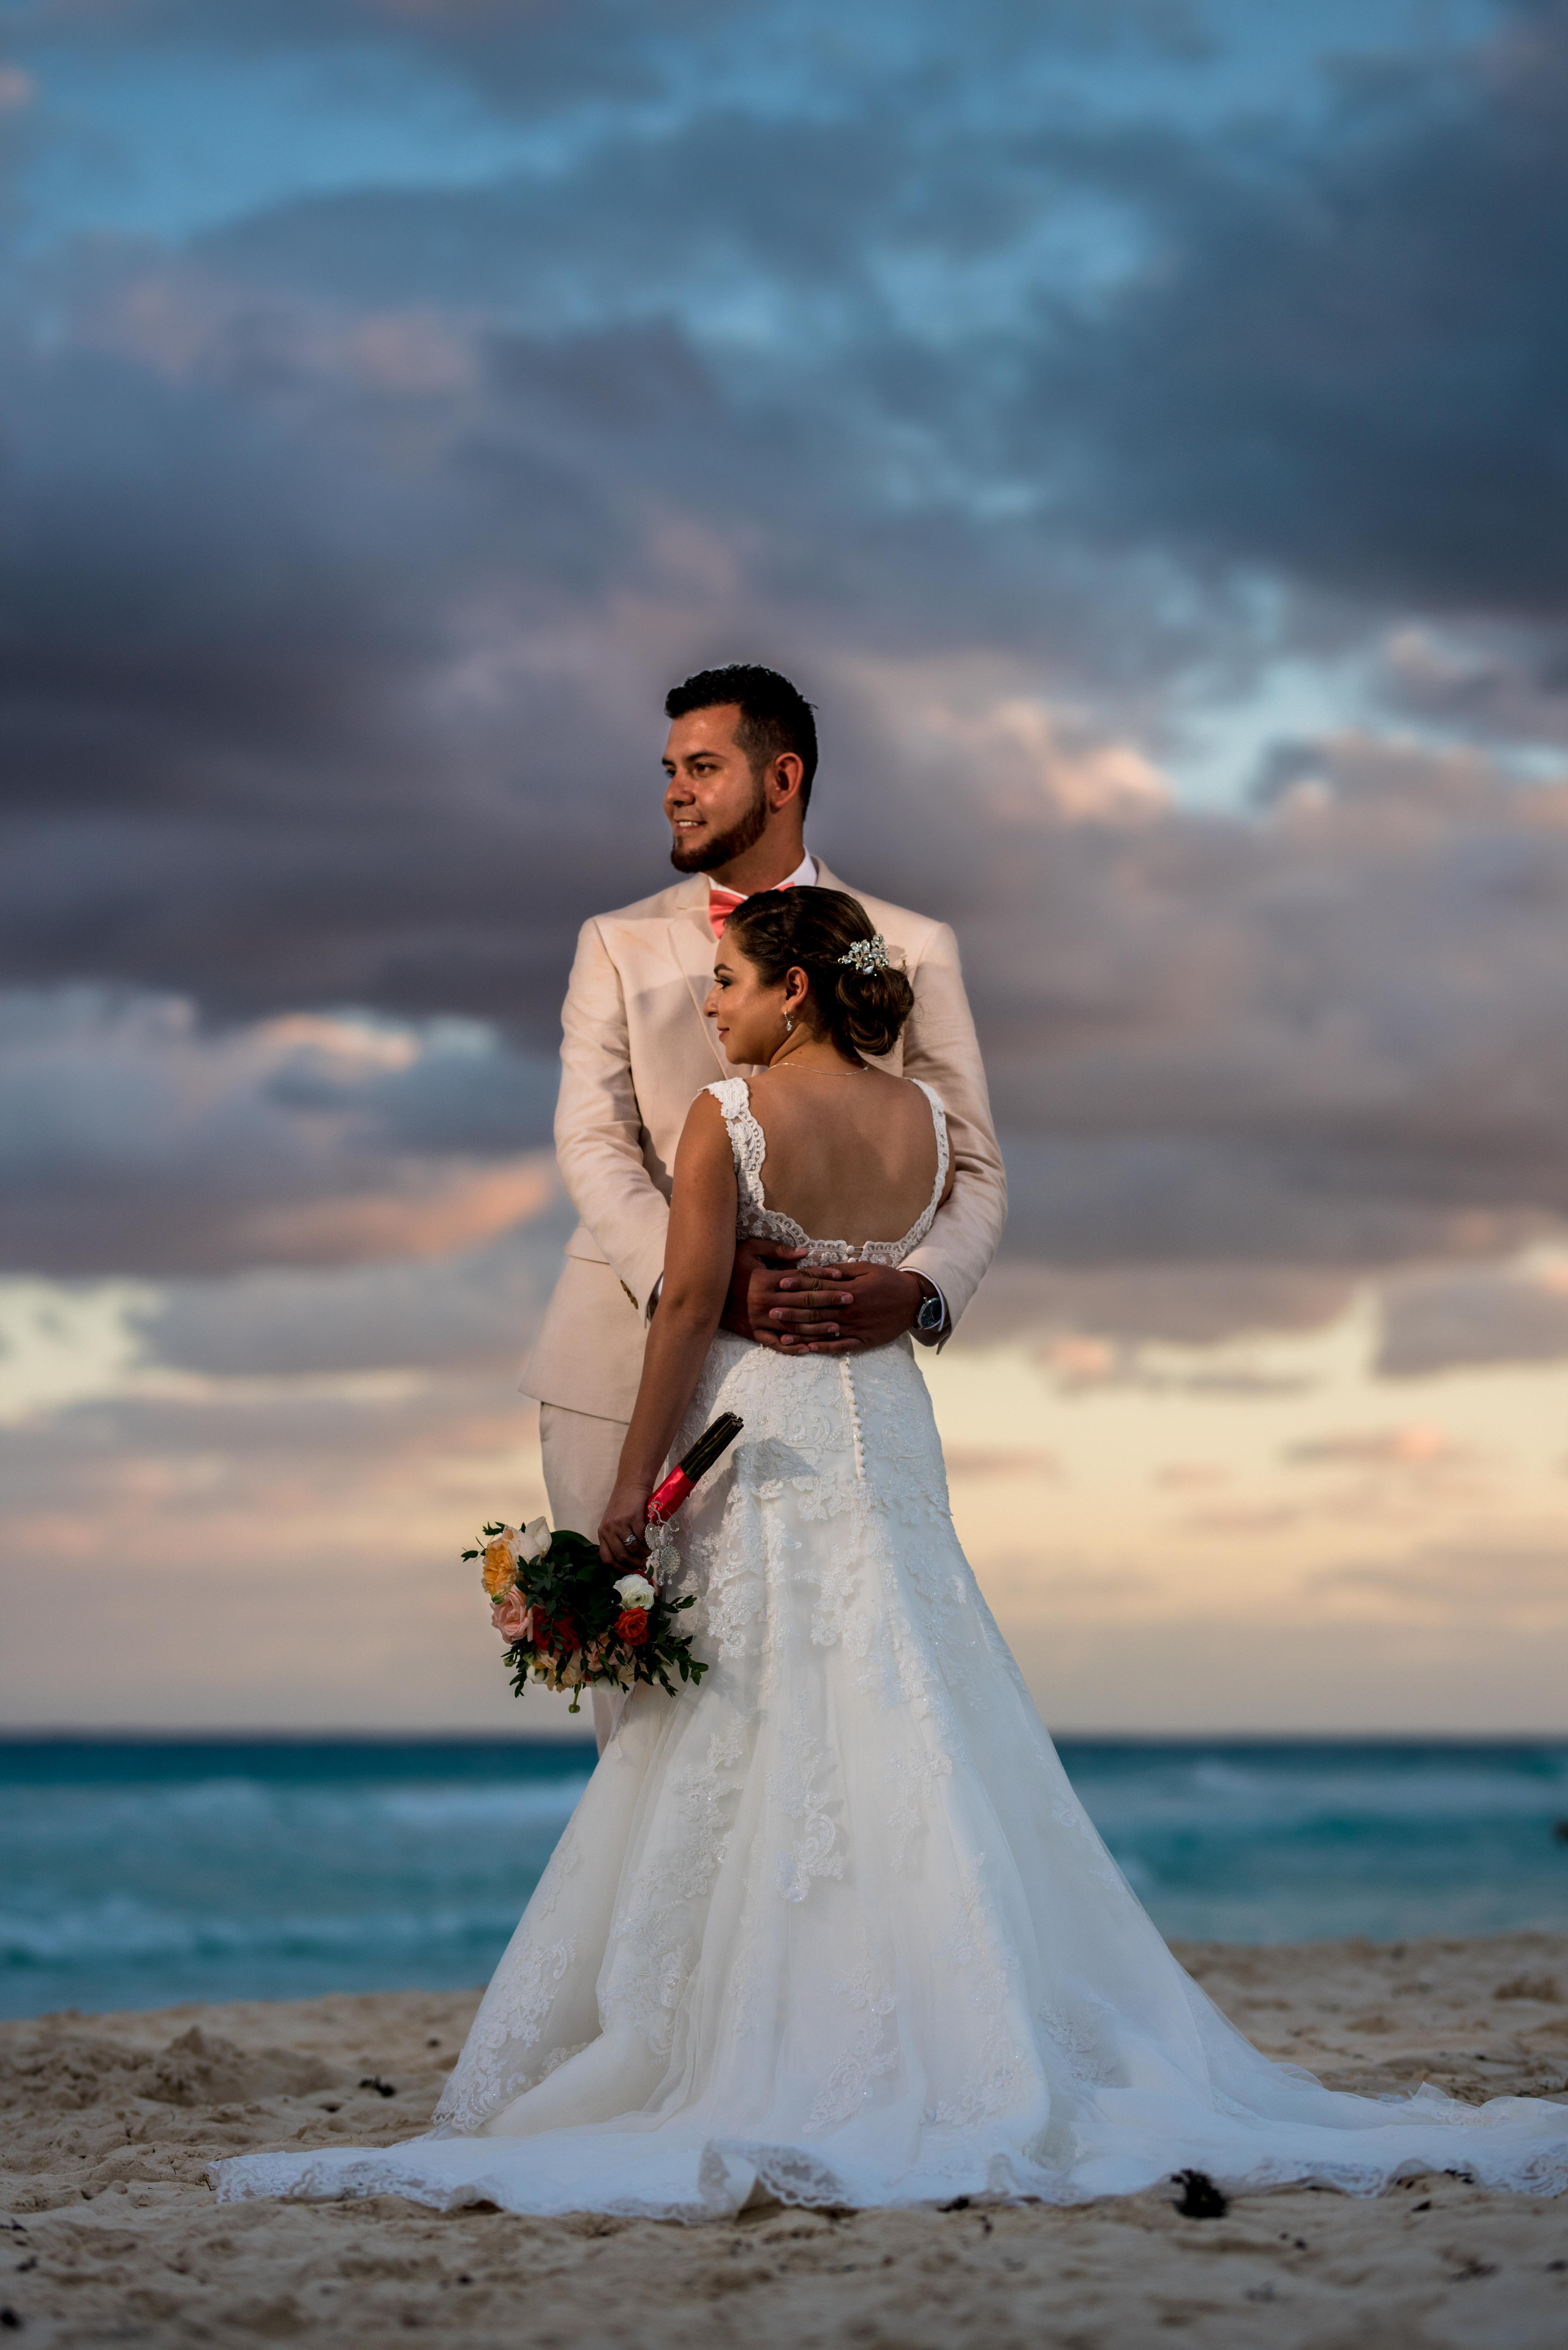 david+rangel+photography+wedding+couple+hotel+omni+cancun